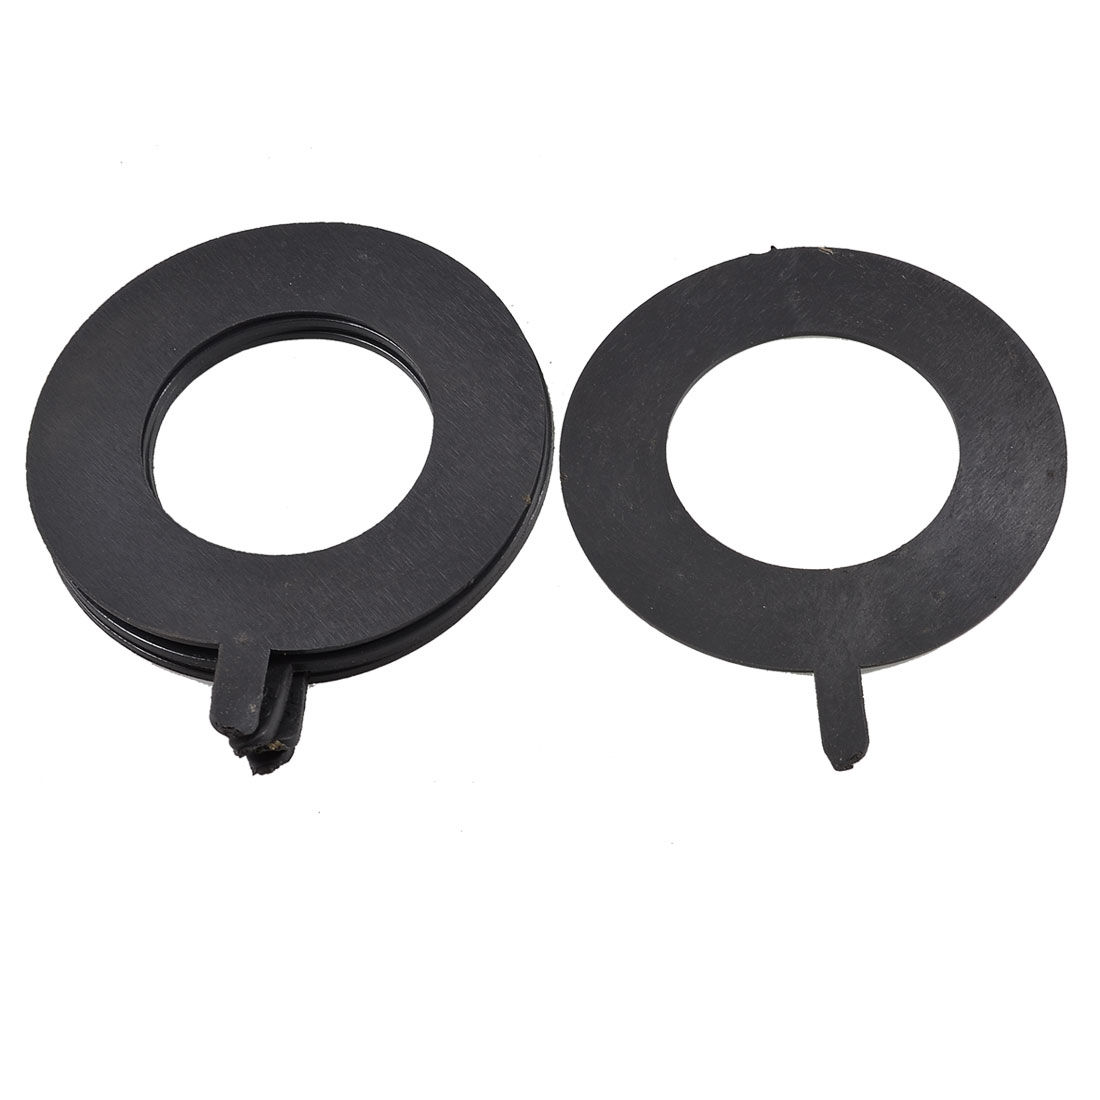 5x Auto Black Rubber Sealing Gaskets Cushions 97mm x 57mm x 2mm